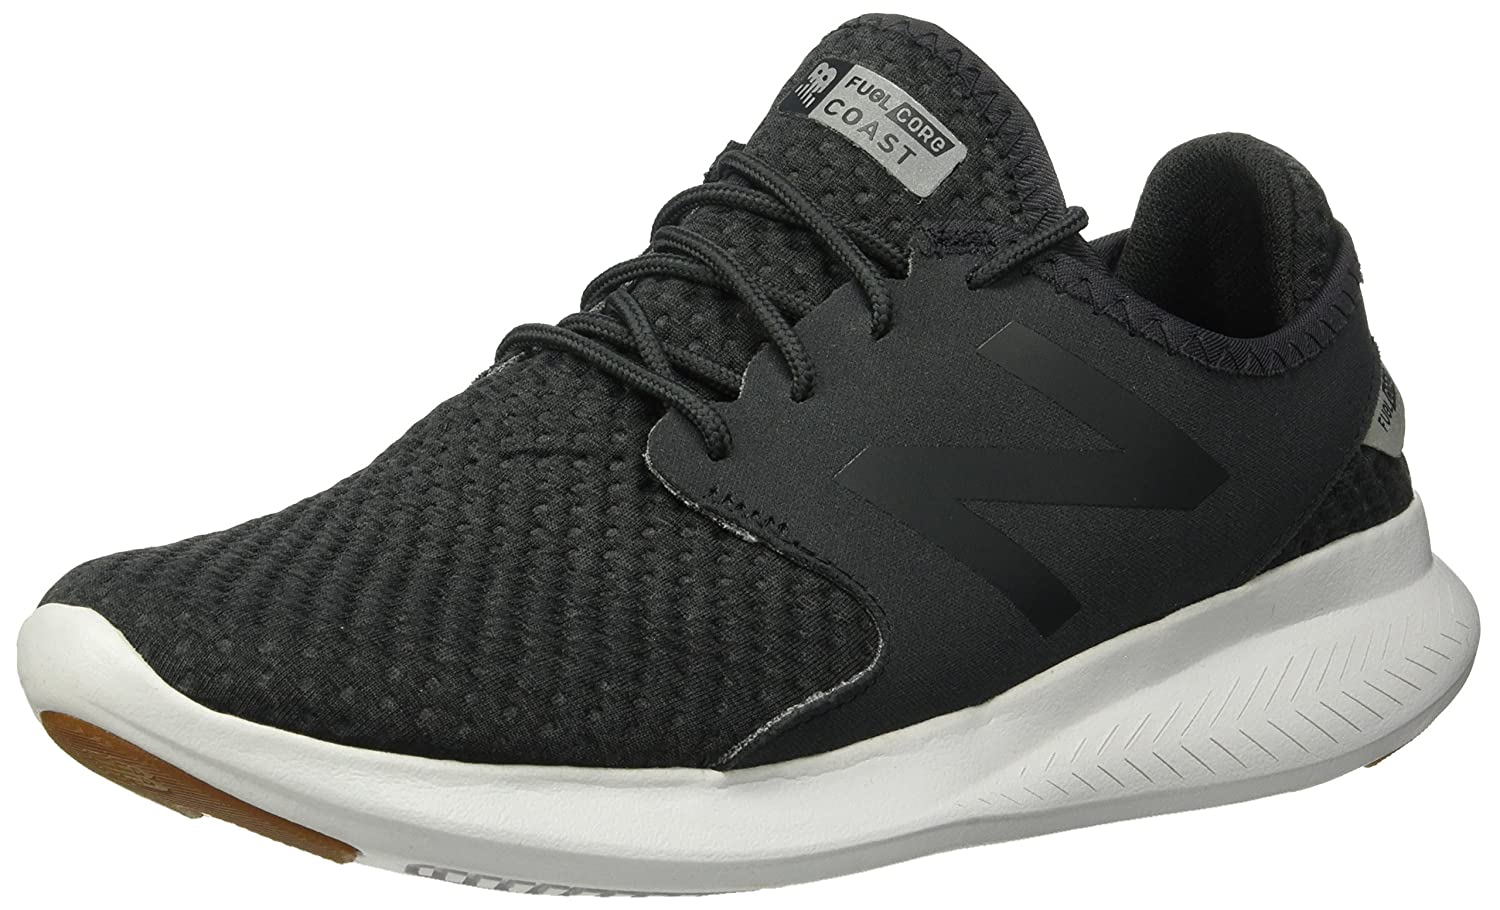 New Balance Women's Coast-V3 B(M) Running Shoe B01NAMVZJ6 11 B(M) Coast-V3 US|Black/Phantom 36b32b